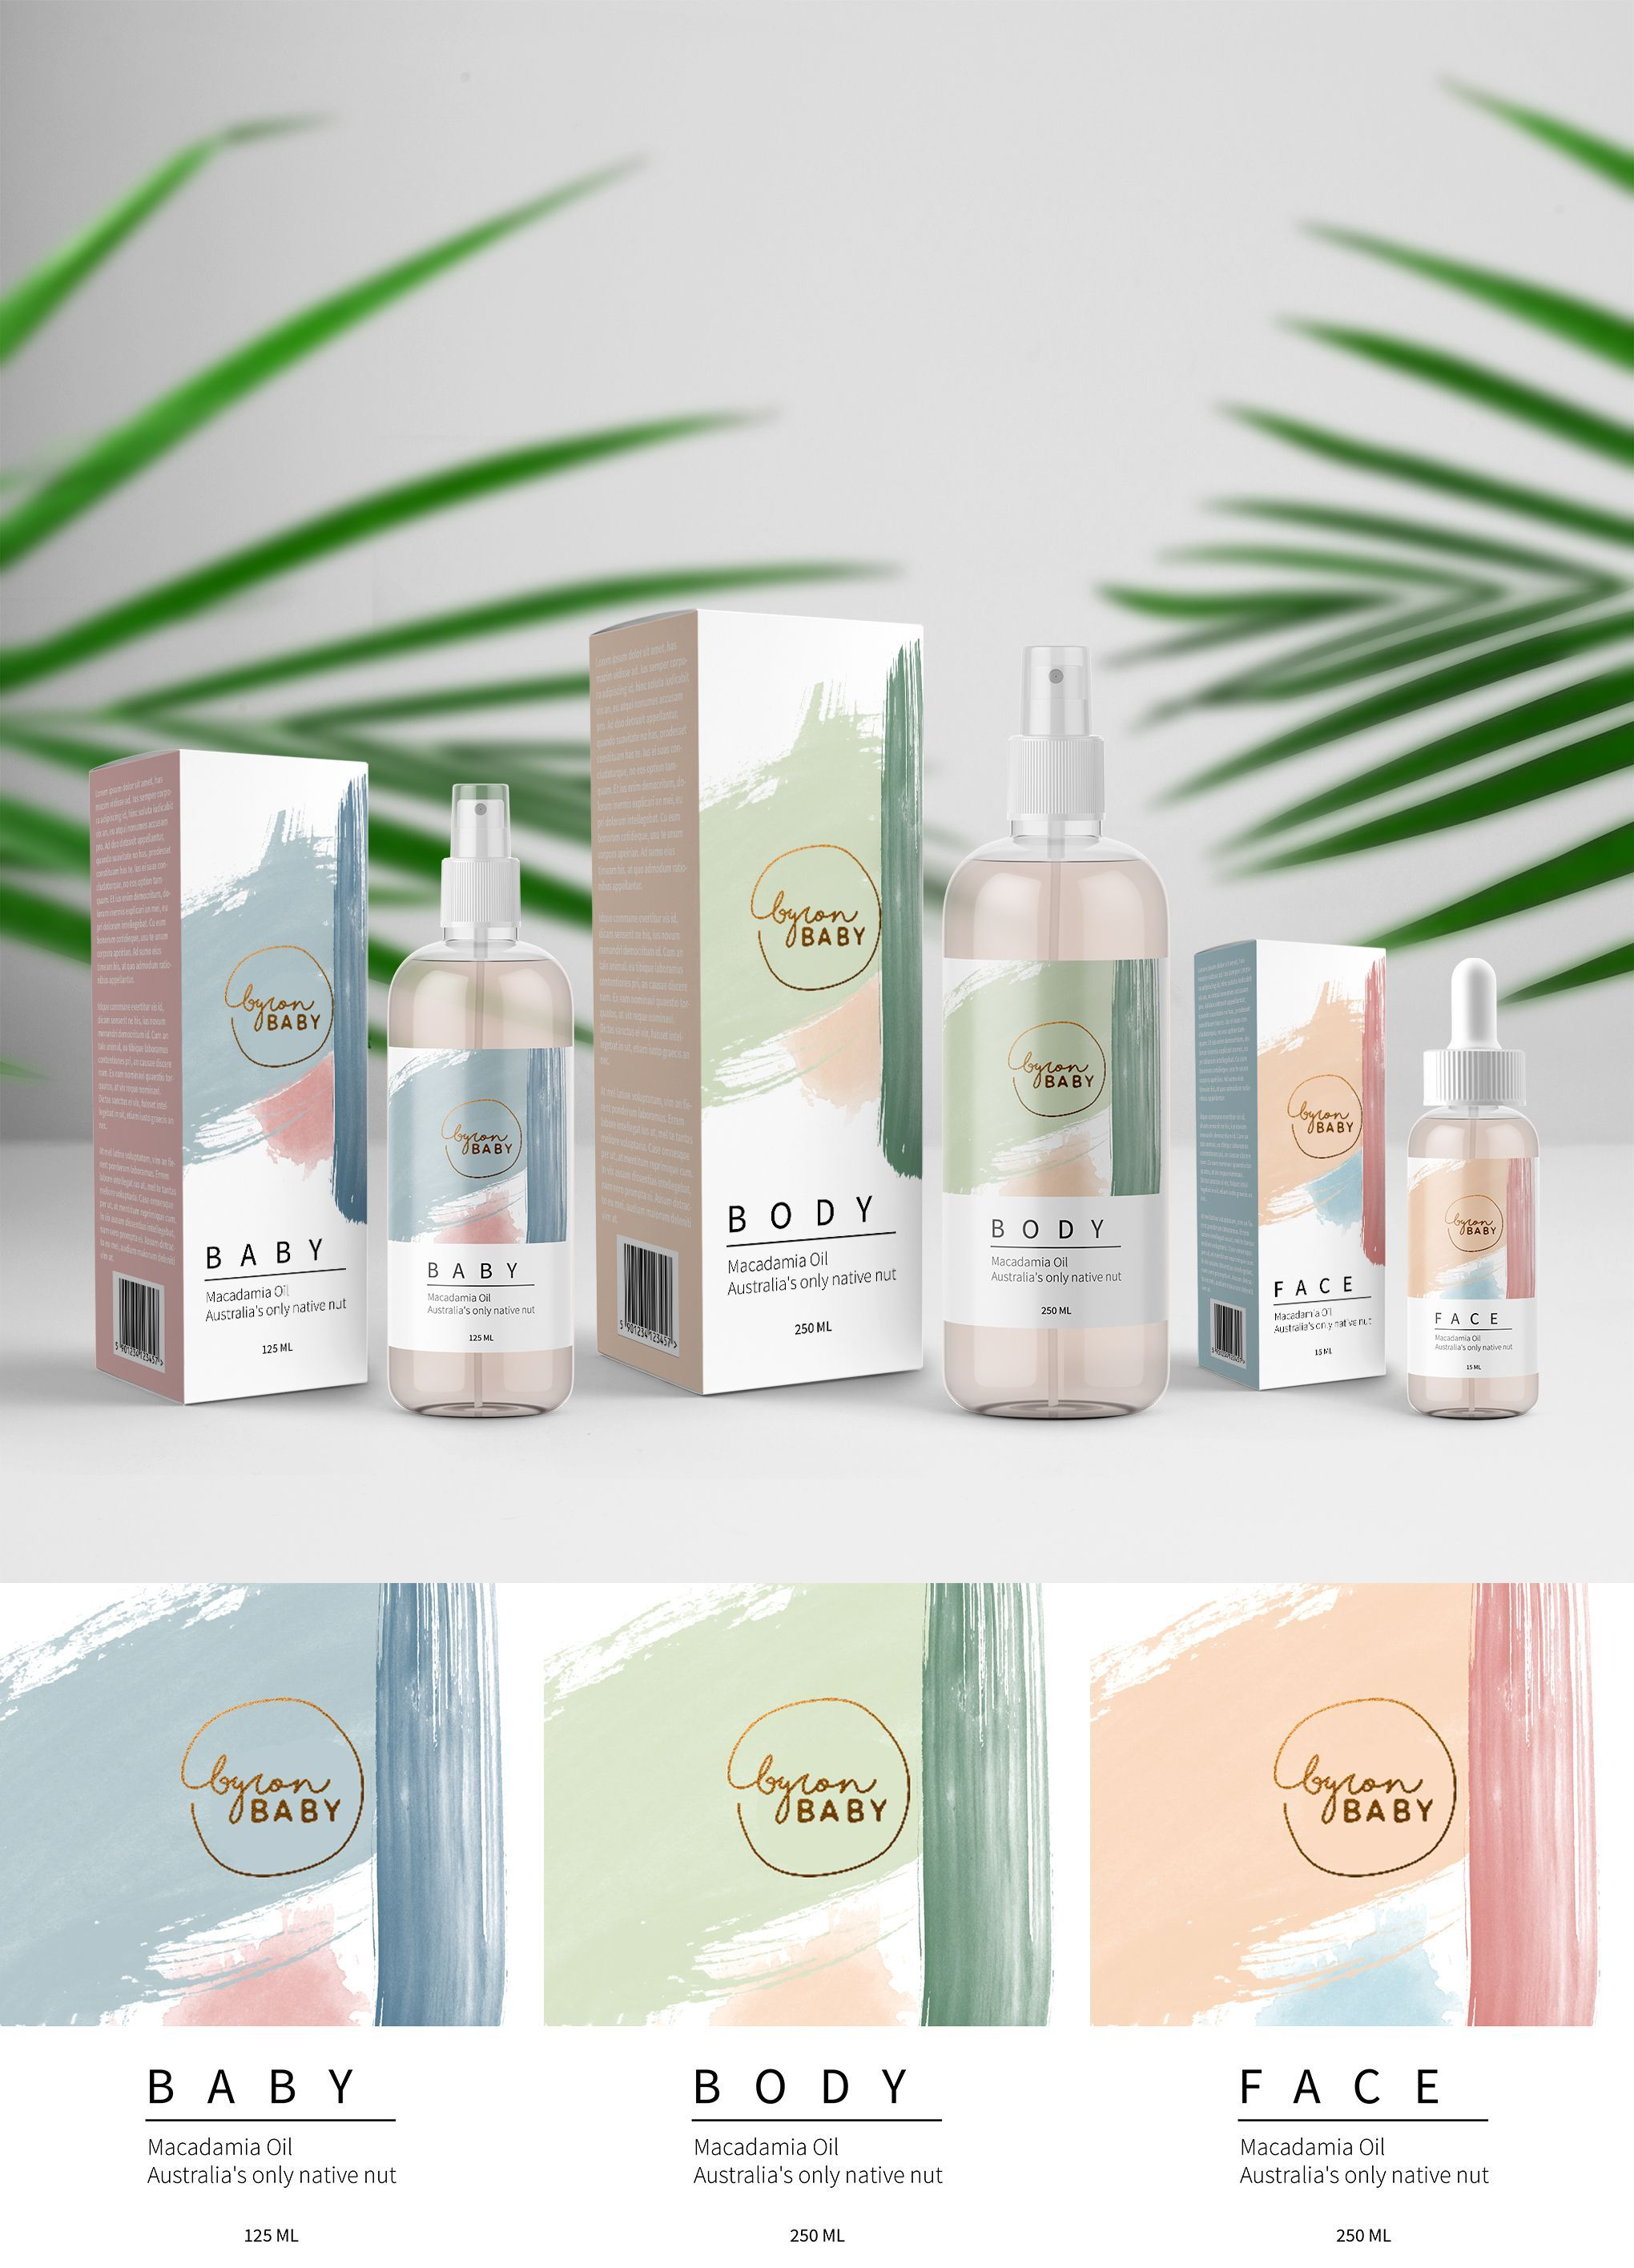 Skin Care Packaging Design By Adina Skincaredesign Skin Care